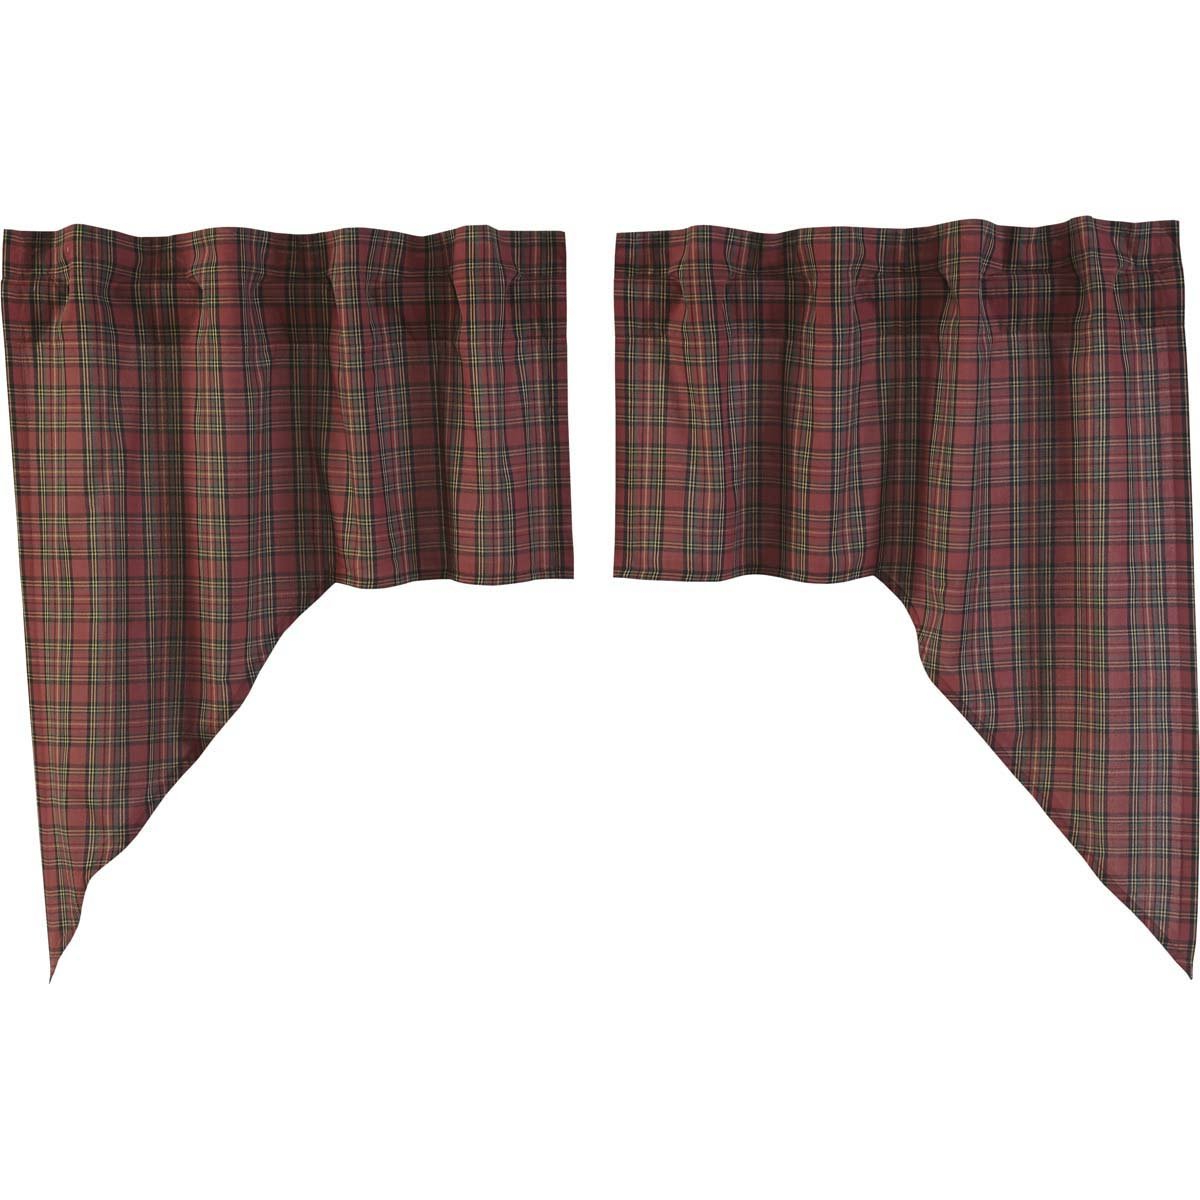 Amazon: Vhc Brands Primitive Rustic & Lodge Kitchen For Well Liked Cumberland Tier Pair Rod Pocket Cotton Buffalo Check Kitchen Curtains (View 7 of 20)